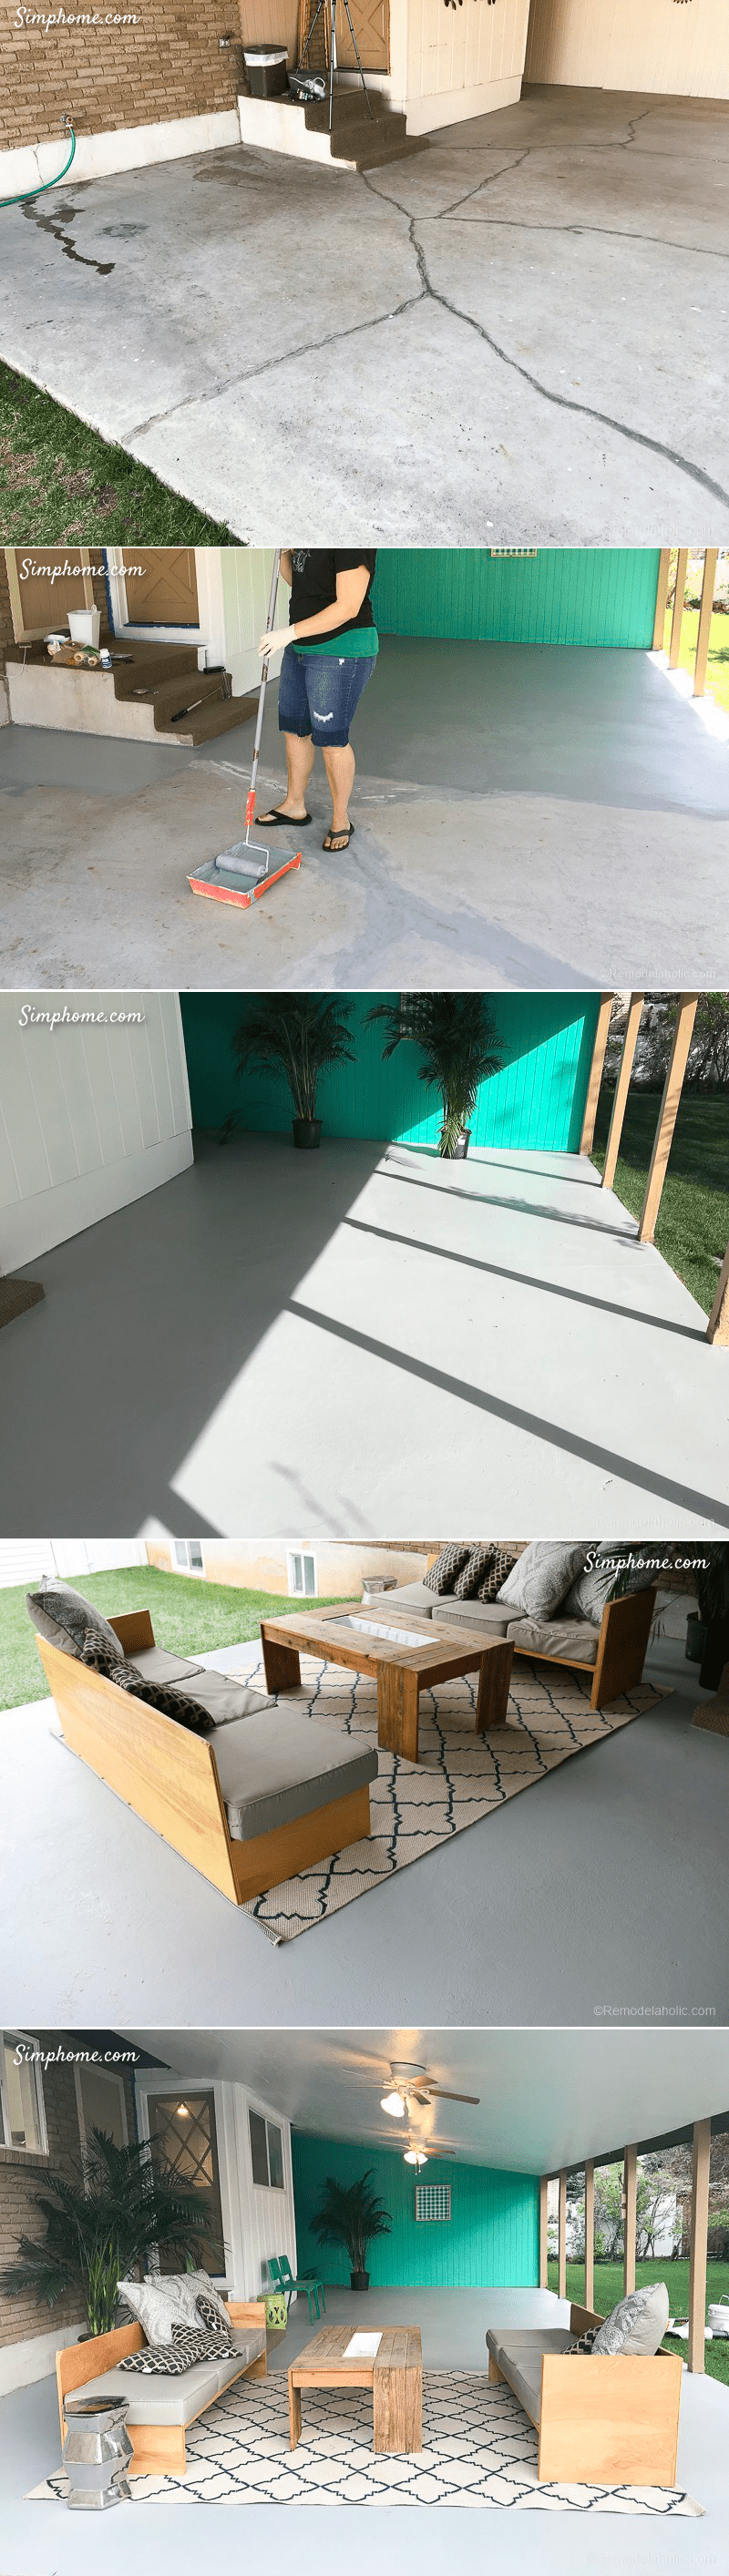 9.Paint the Concrete Patio by Simphome.com